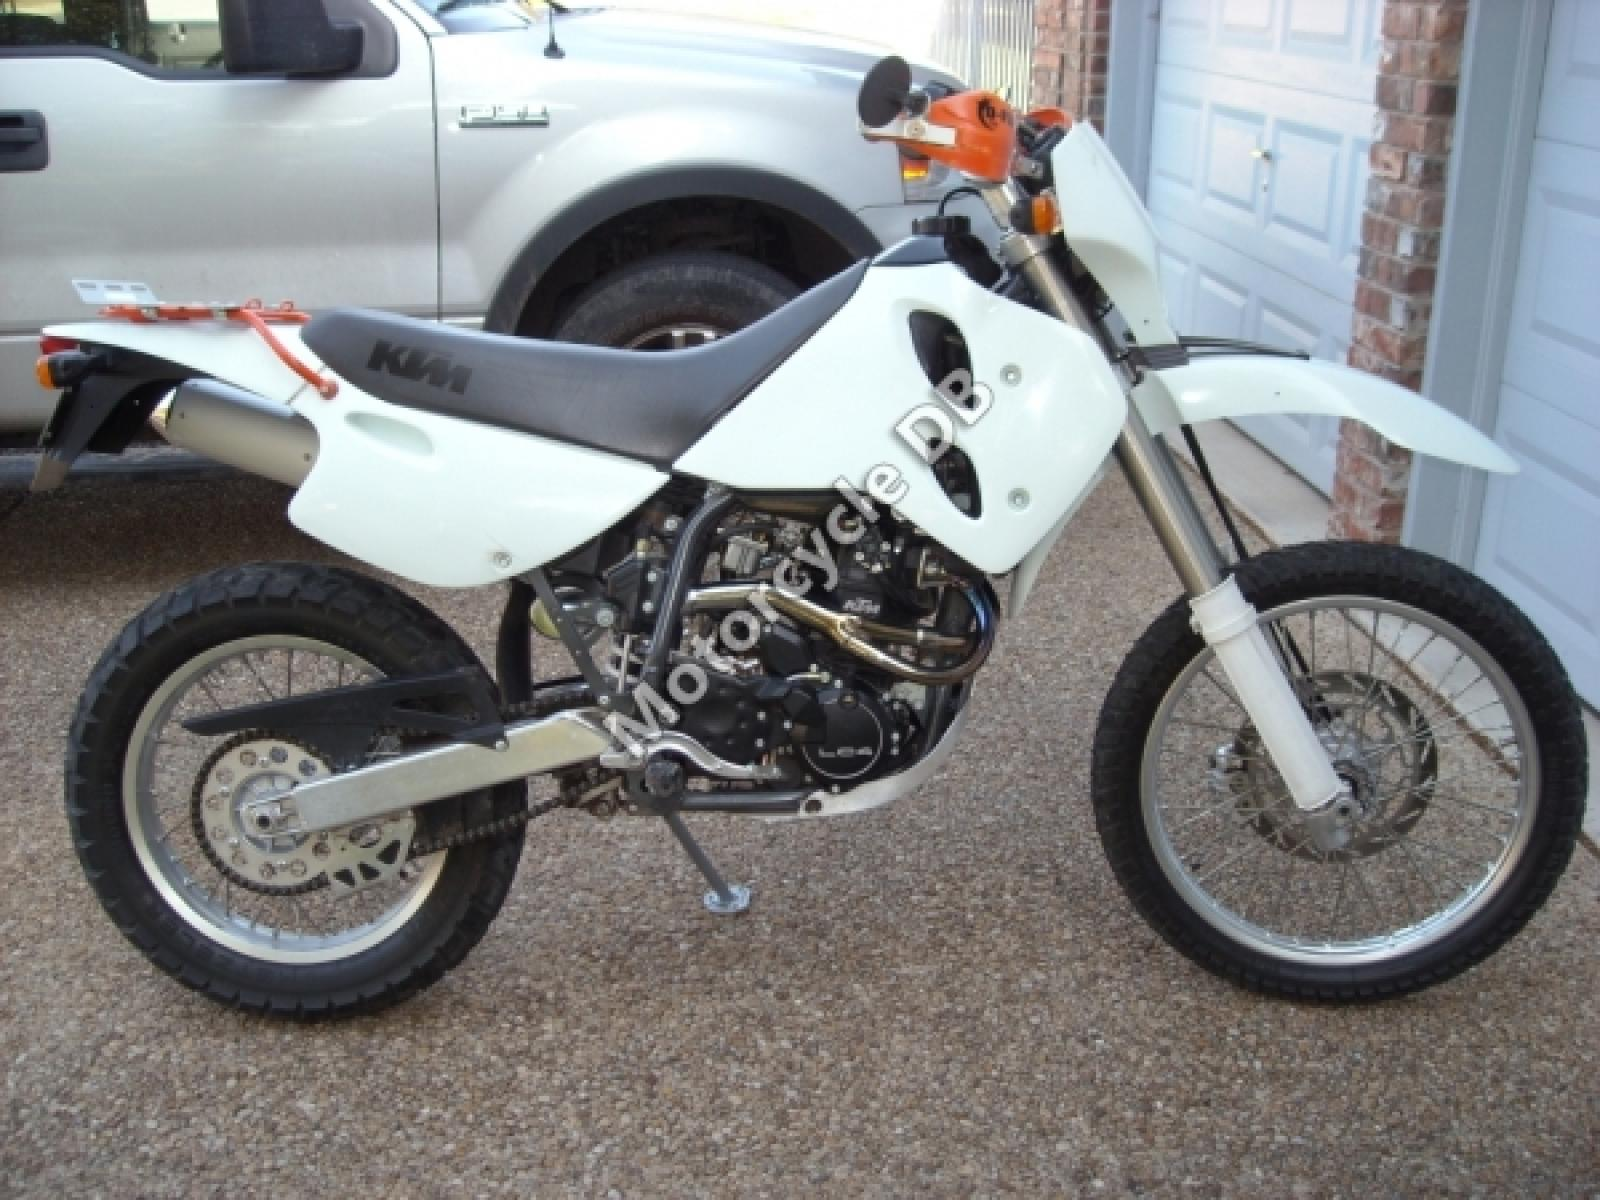 KTM Enduro 600 Rallye (reduced effect) #4